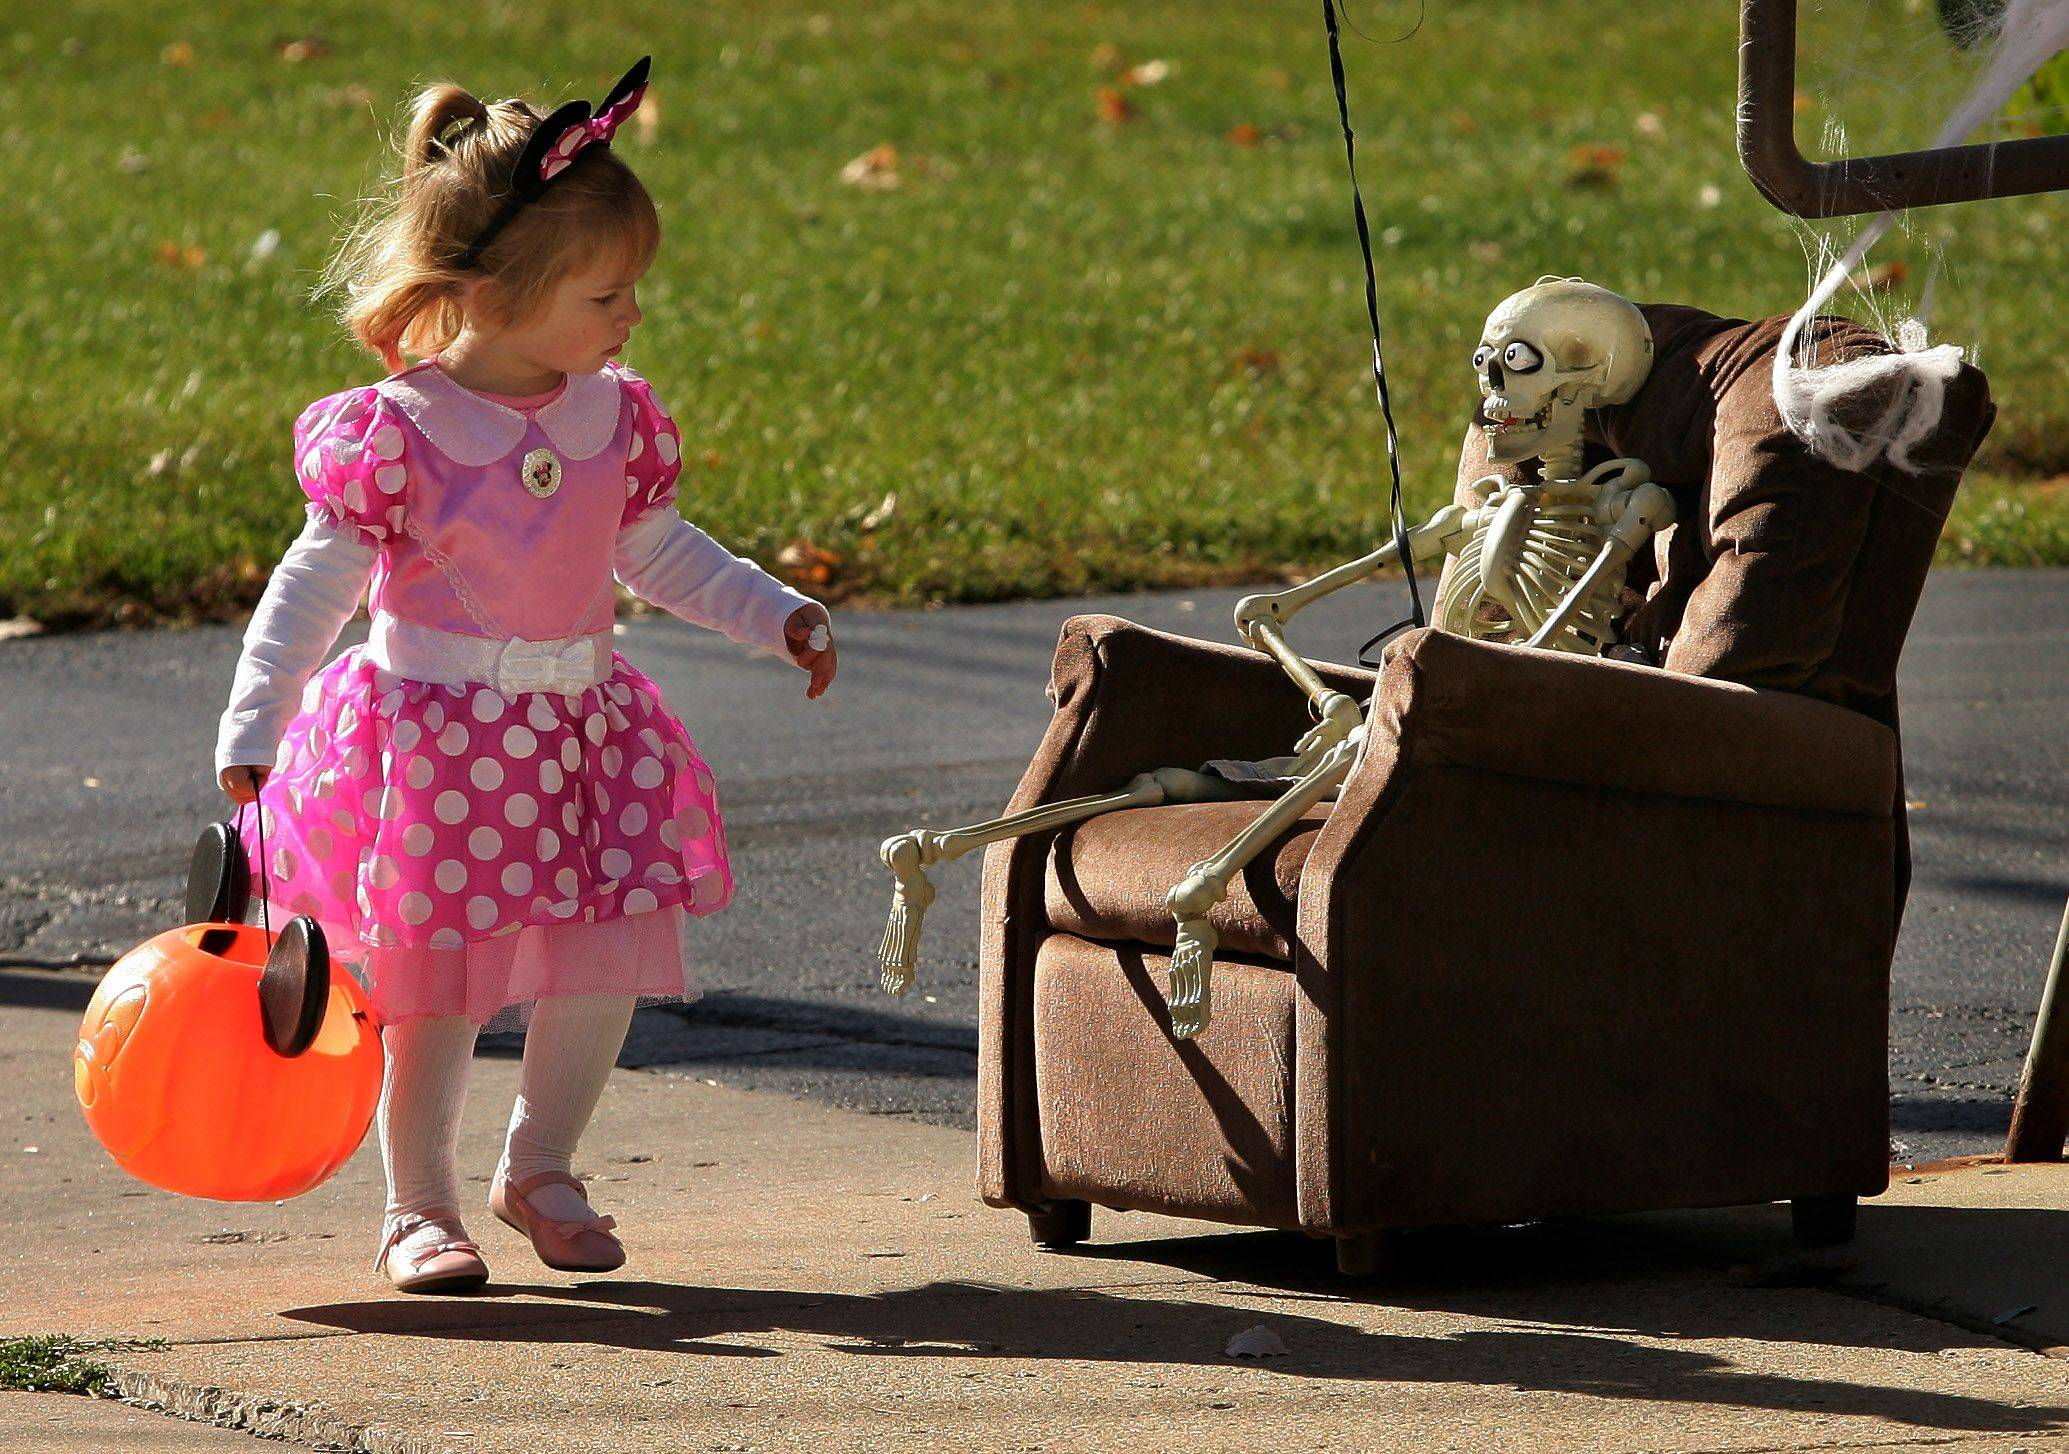 Addison Becker, 2, of Antioch looks at a skeleton sitting in a lounge chair outside Laura's Flower Shoppe during the Lake Villa Halloween Celebration Sunday in the downtown area.